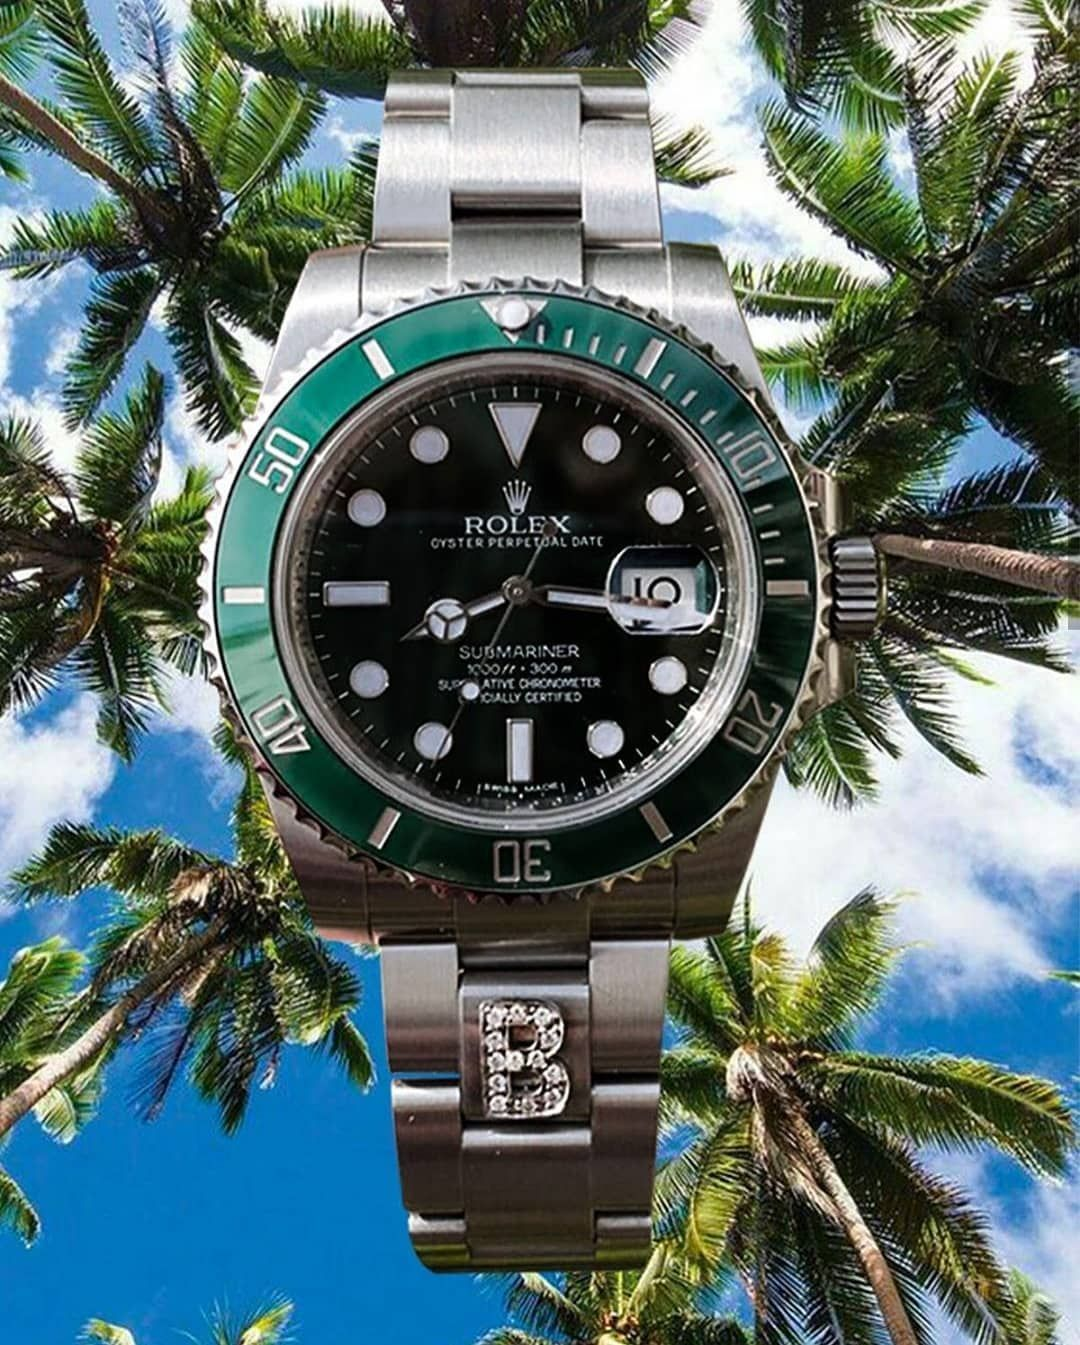 Rolex Submariner With Timeapp Milano Patented Link Cover Which Makes It Possible To Customize Your Watch With Belle Montre Homme Achat Montre Montre Pas Cher